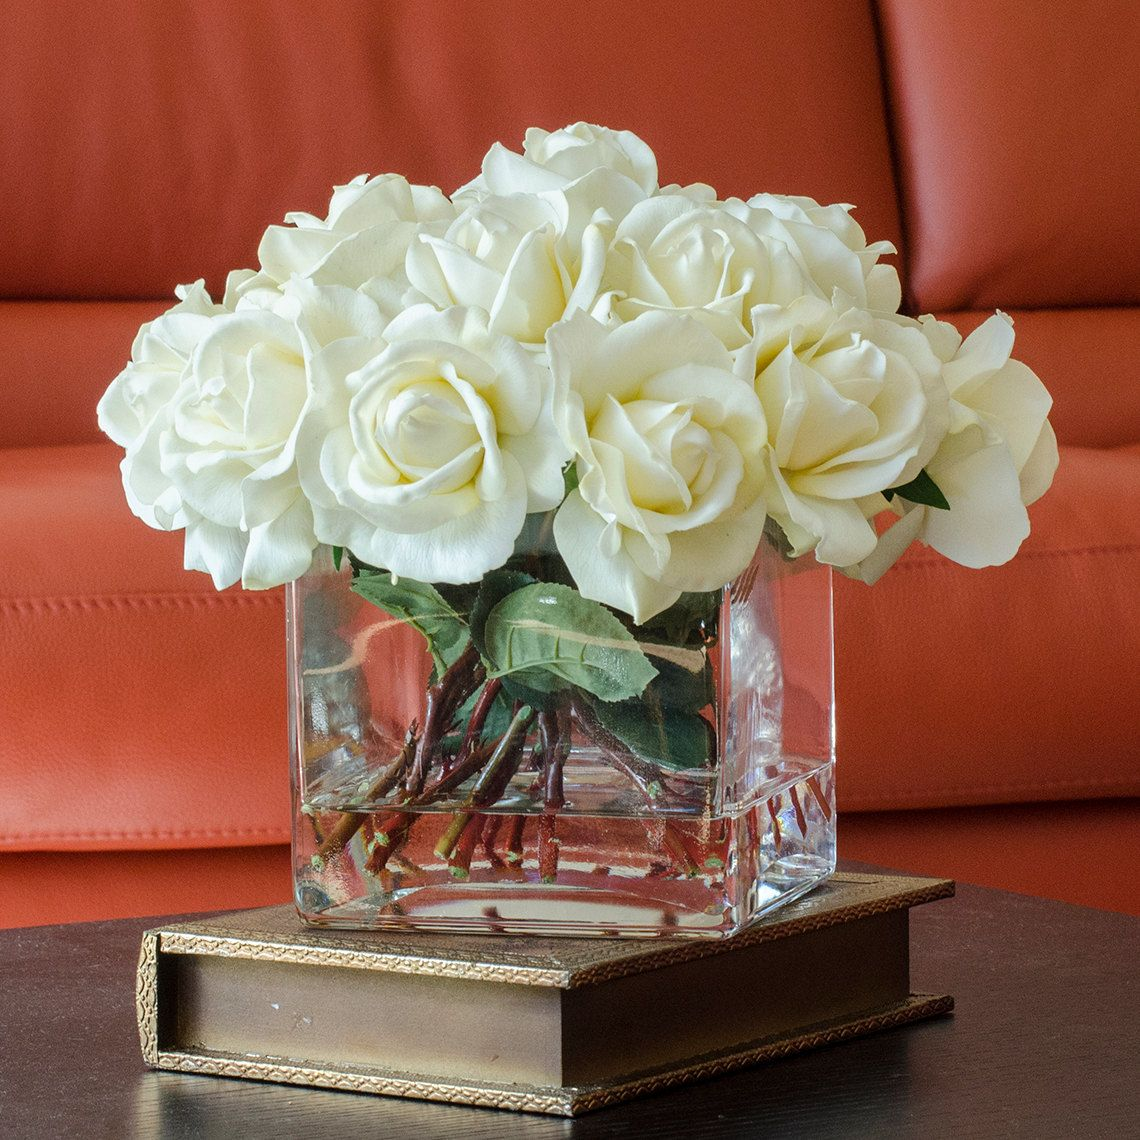 Home bulk roses peach roses - White Real Touch Rose Arrangement With Square Glass Vase Artificial Flowers Faux Arrangement For Home Decor Centerpiece